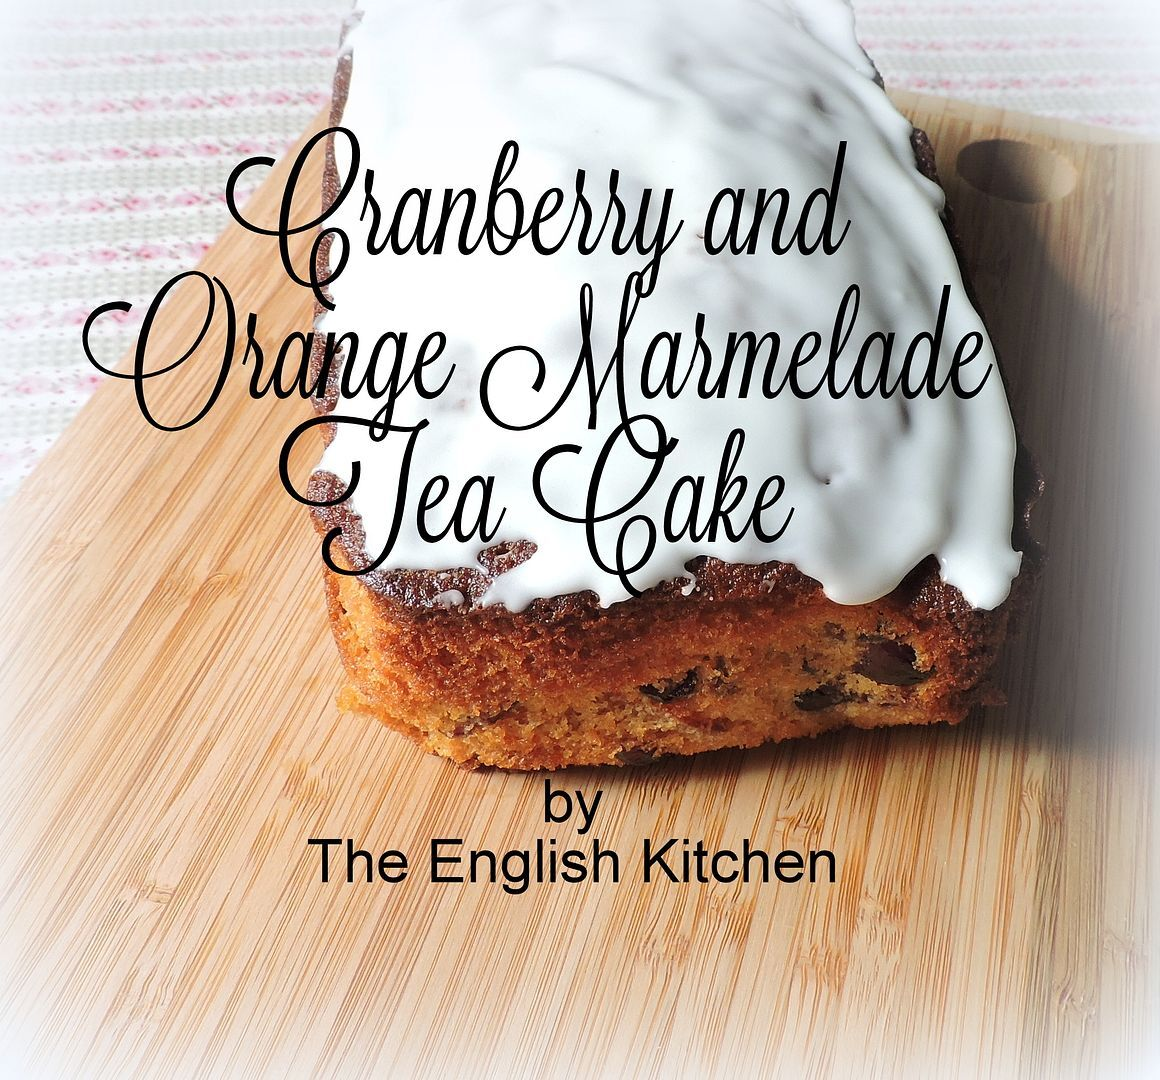 Cranberry and Orange Marmalade Tea Cake